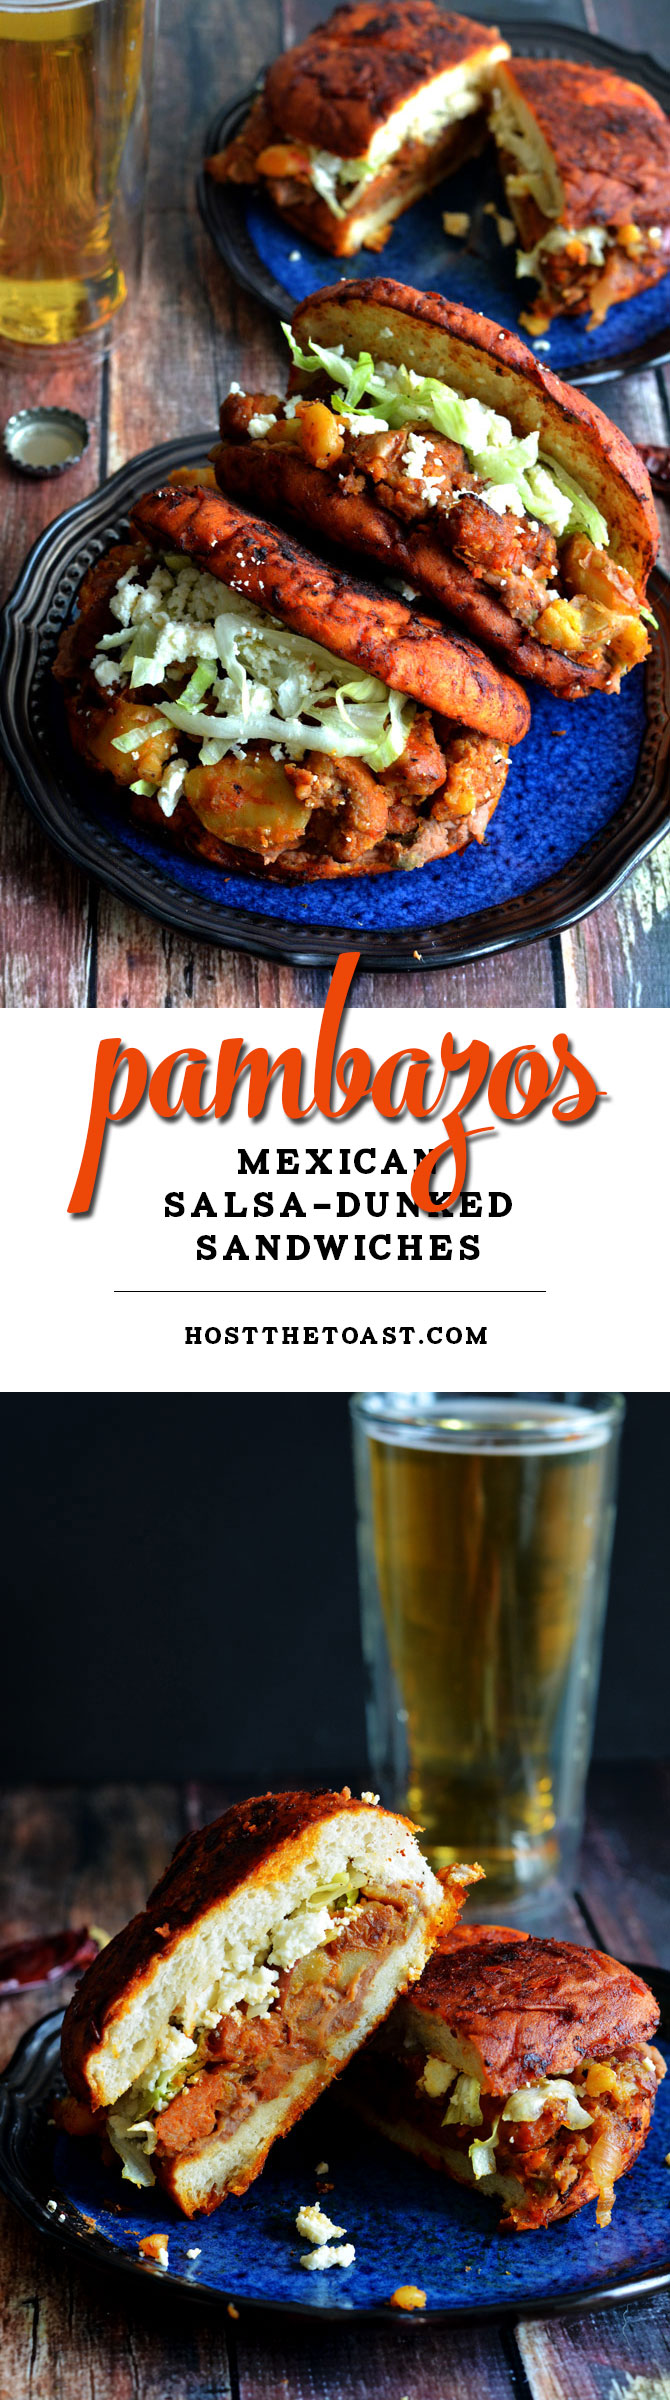 Pambazos (Mexican Salsa-Dunked Sandwiches). They're filled with potatoes, chorizo sausage, and refried beans! | hostthetoast.com